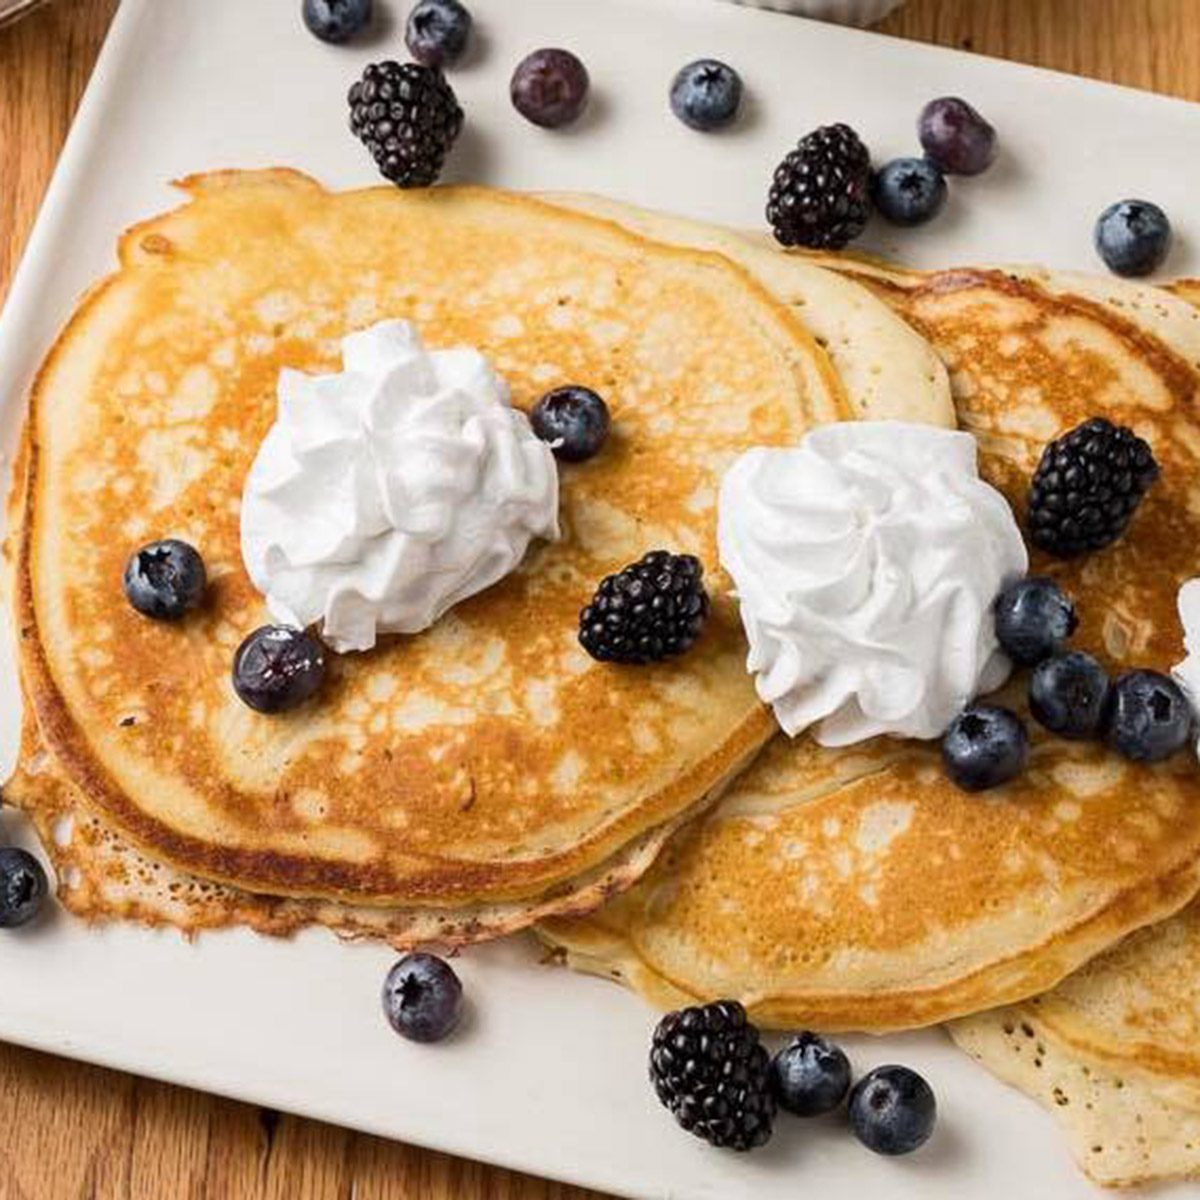 The South Mouth Deli, Hattiesburg pancakes